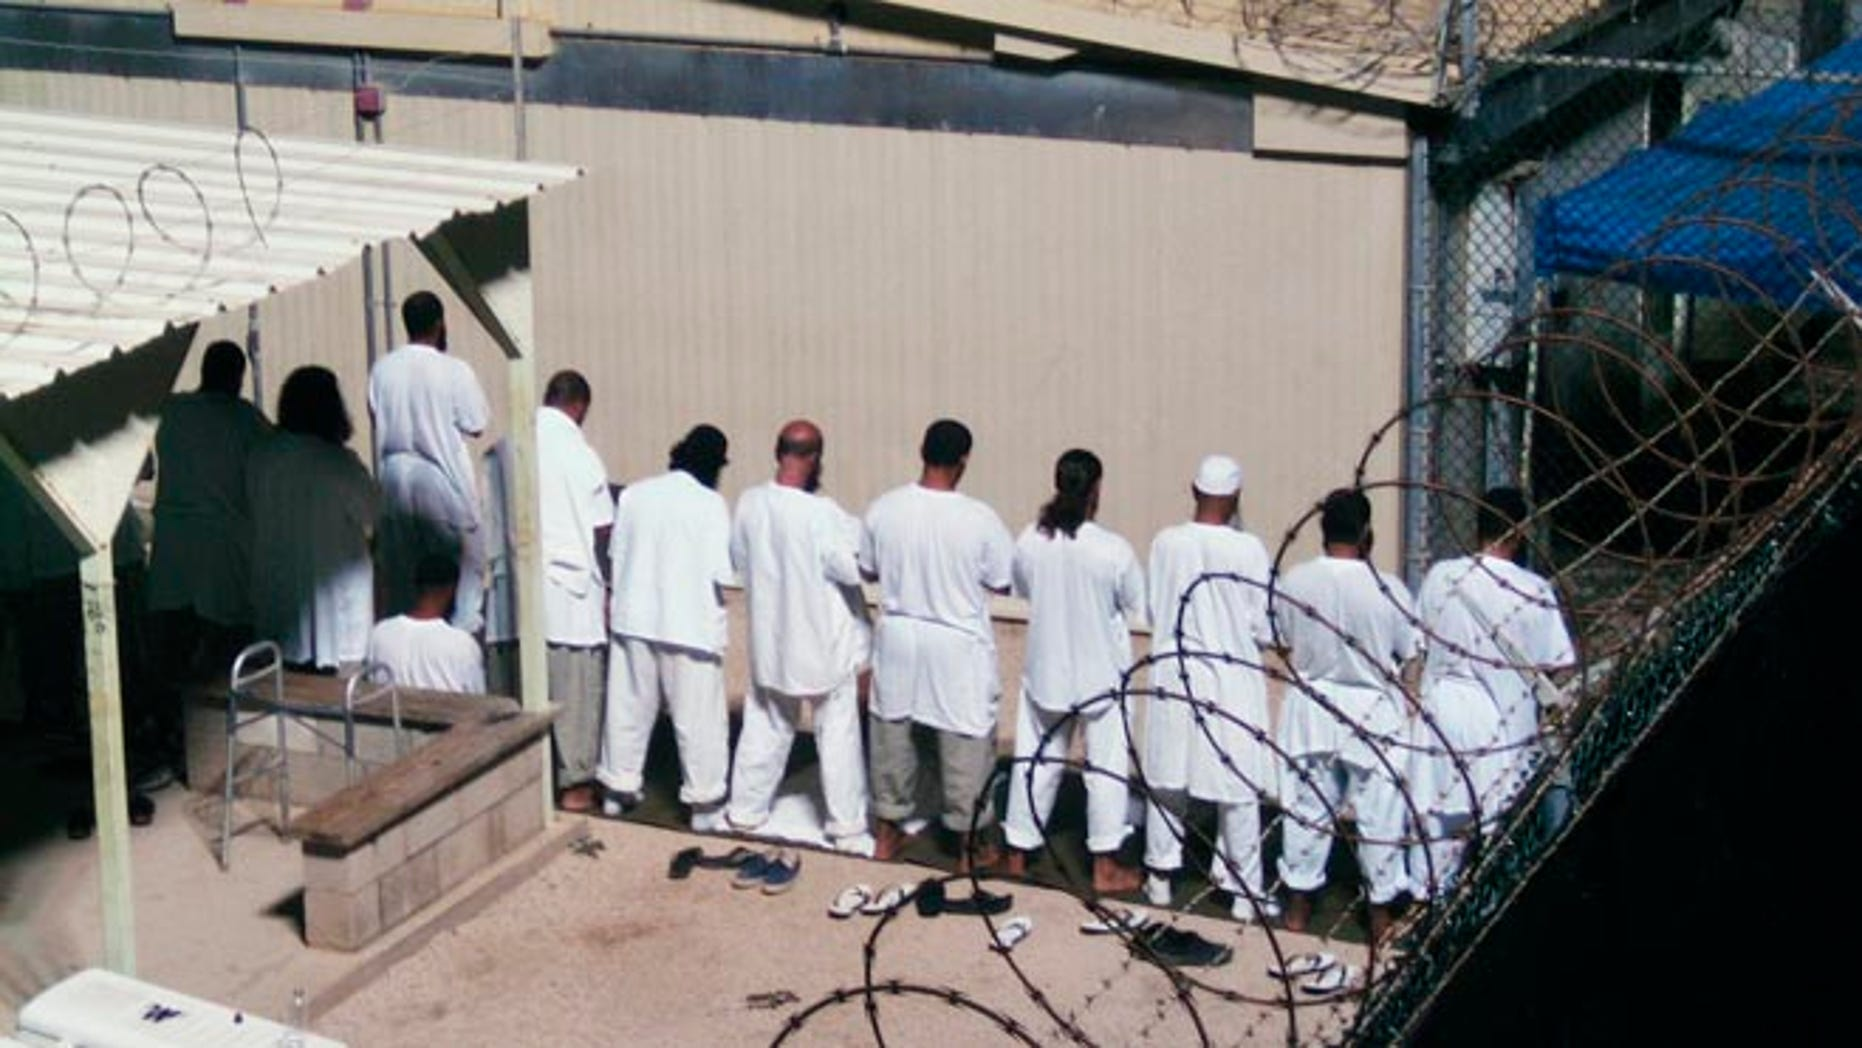 FILE: 2009: Detainees prayer at a detention facility at Guantanamo Bay U.S. Naval Base, in Cuba.